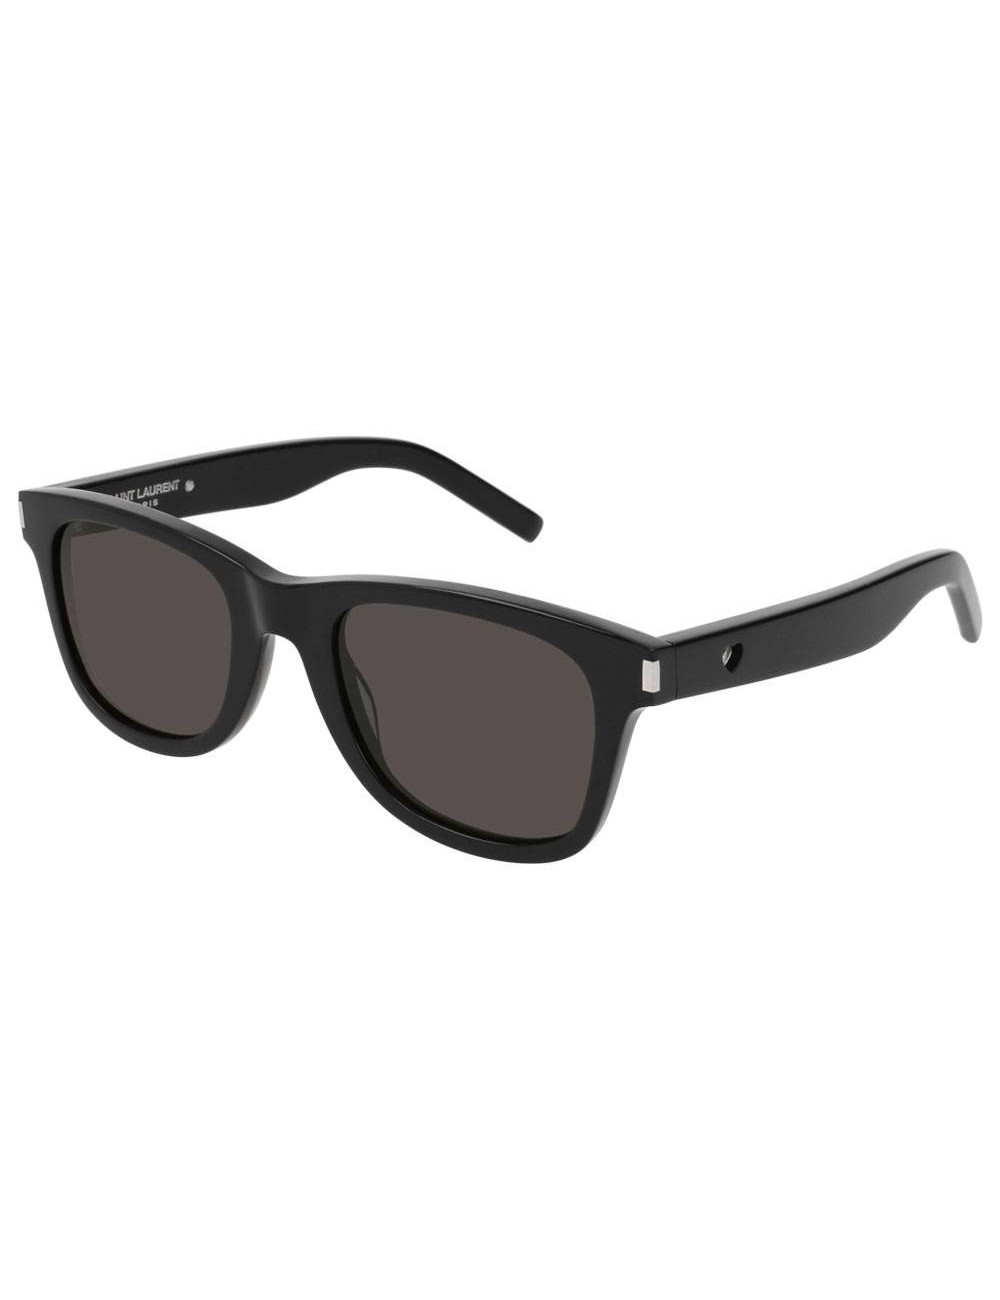 Lunettes de soleil Saint Laurent Classic SL 51 HEART PERF | Revendeur Agréé Saint Laurent | product_reduce_price